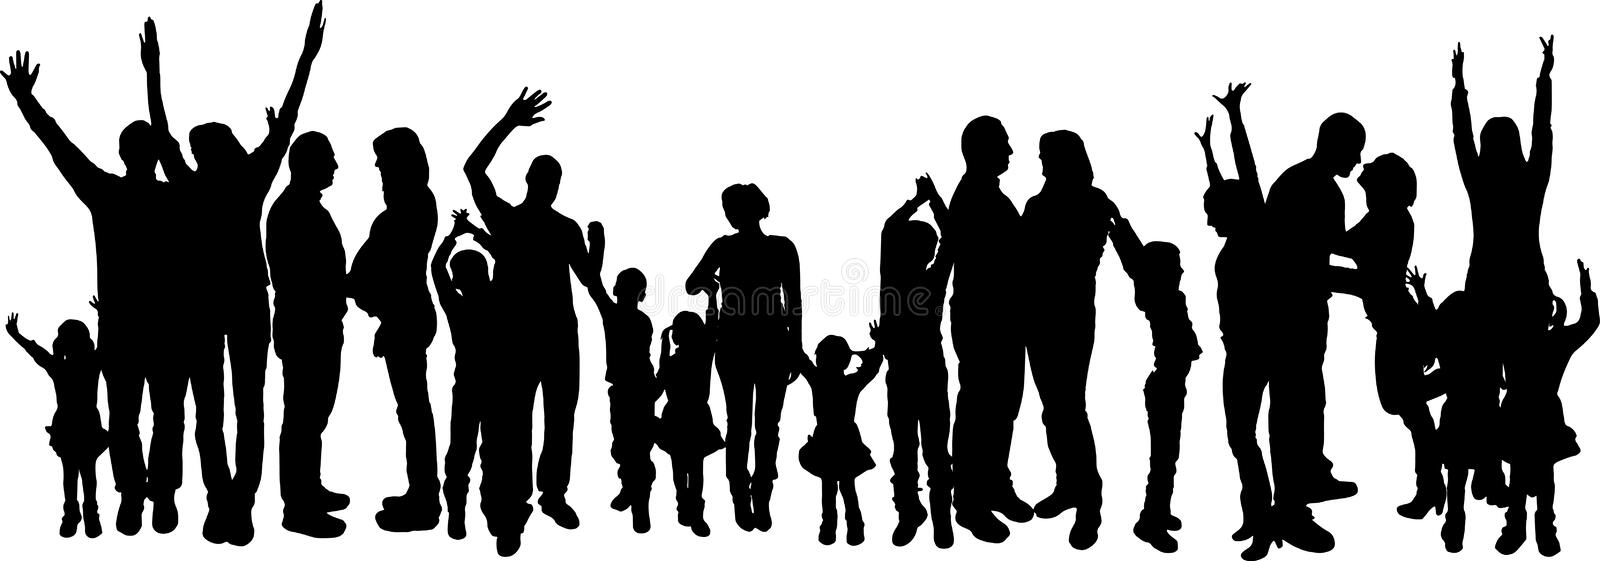 african american family silhouette barbecue party silhouette stock illustration download african family american silhouette